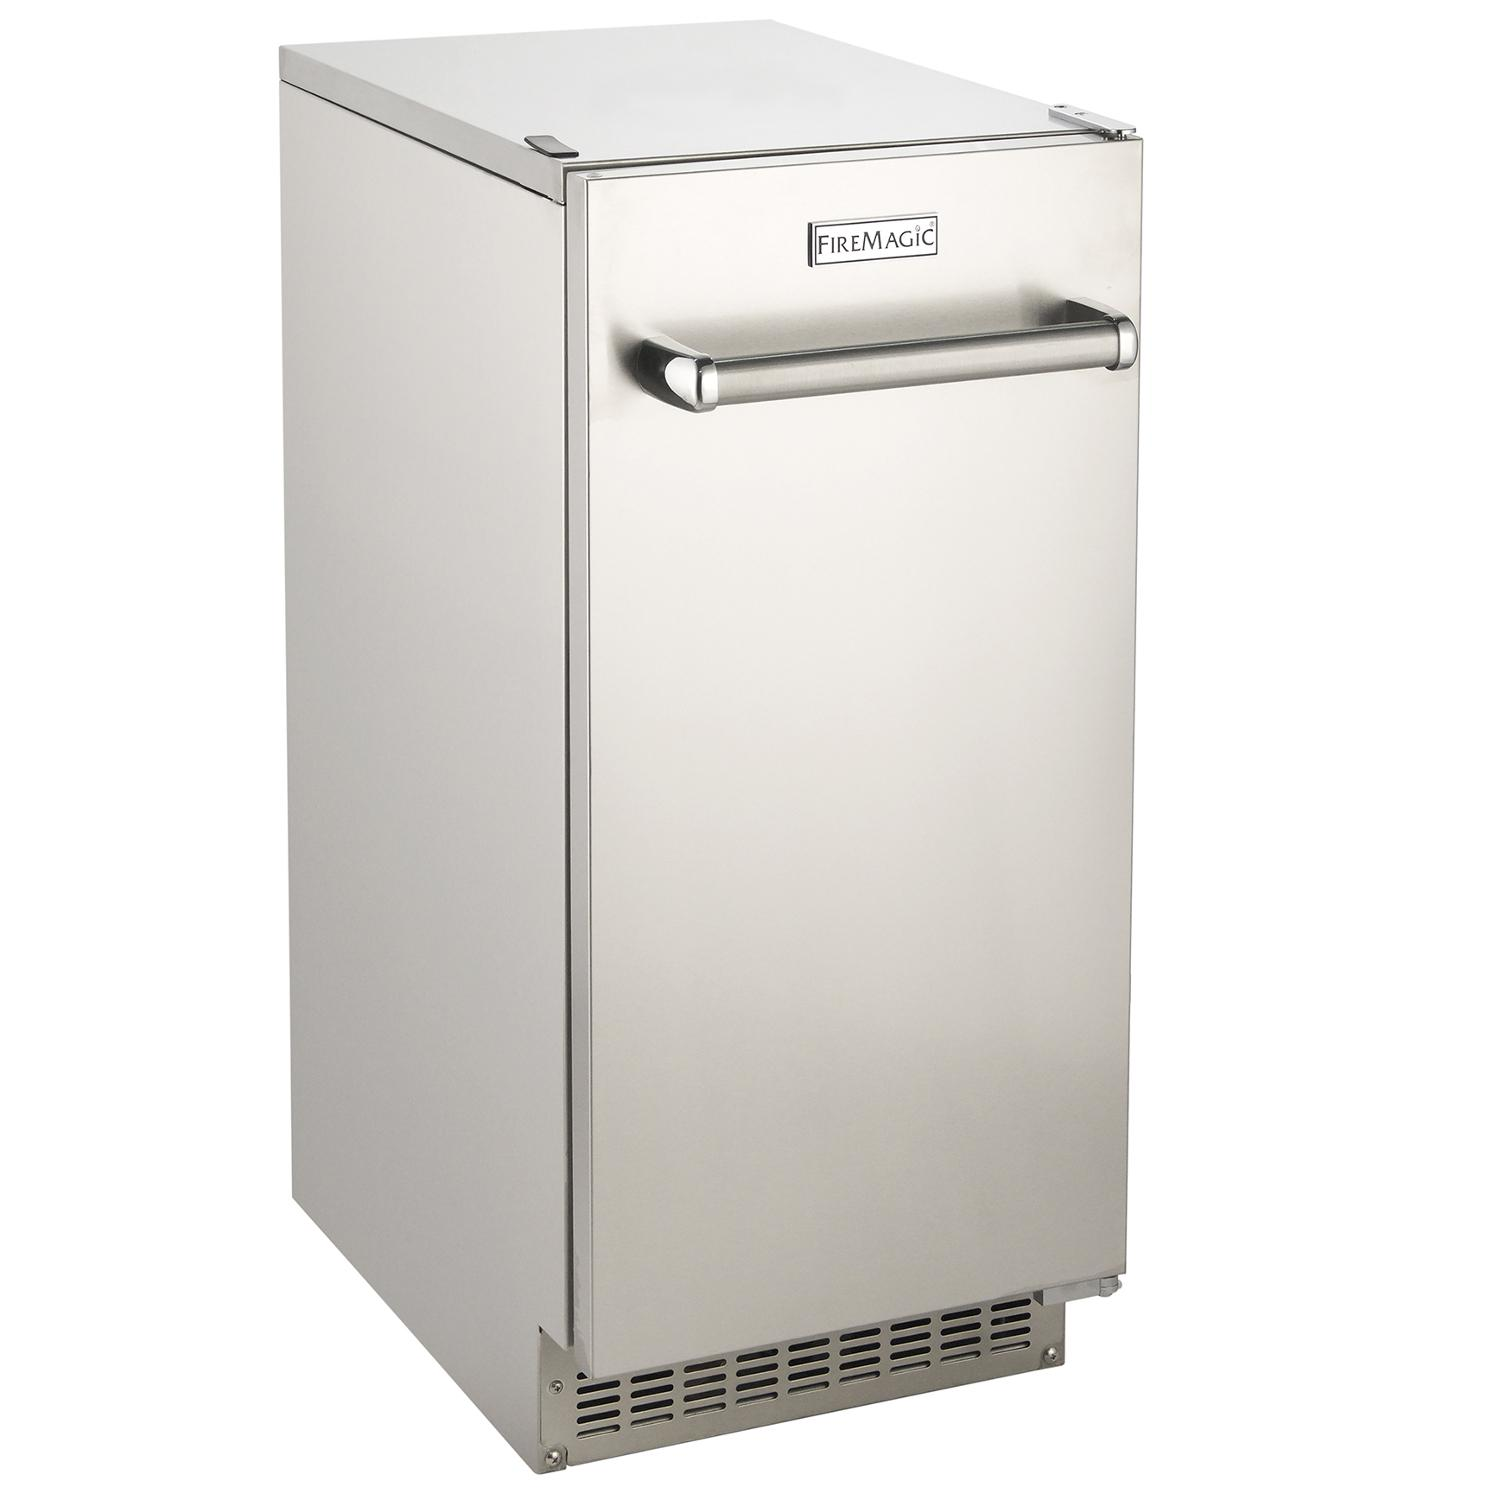 Fire Magic 63 Lb 15 Outdoor Rated Ice Maker With Gravity Drain 3597 Cooking Appliances Portable Grill Small Grill